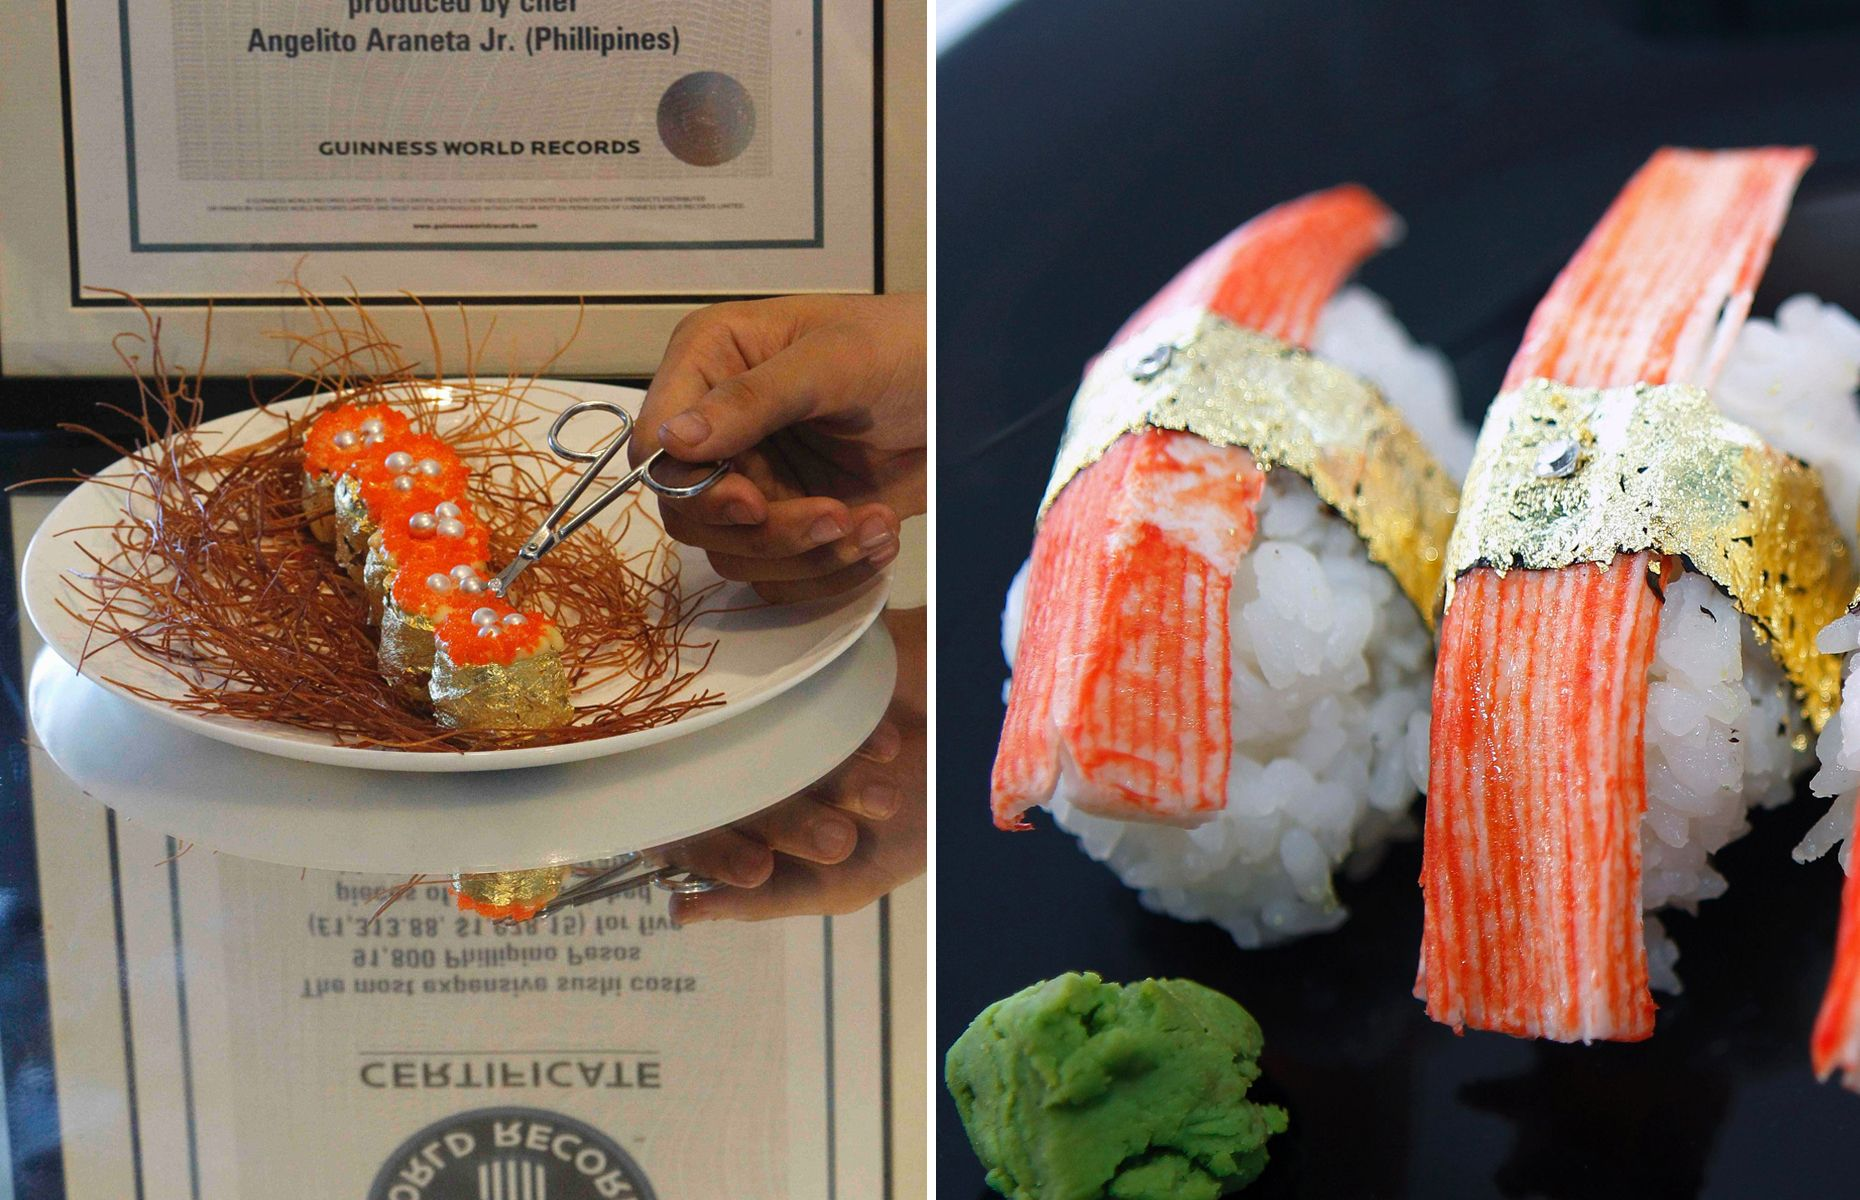 The most expensive things in the world money can buy MOST EXPENSIVE SUSHI Chef Angelito Araneta Jr. of the Philippines prepared the most expensive sushi in 2010 priced at $1,978.15 (91,800 Philippine Pesos). The nigiri was garnished with diamonds and wrapped in 24-karat gold leaf.